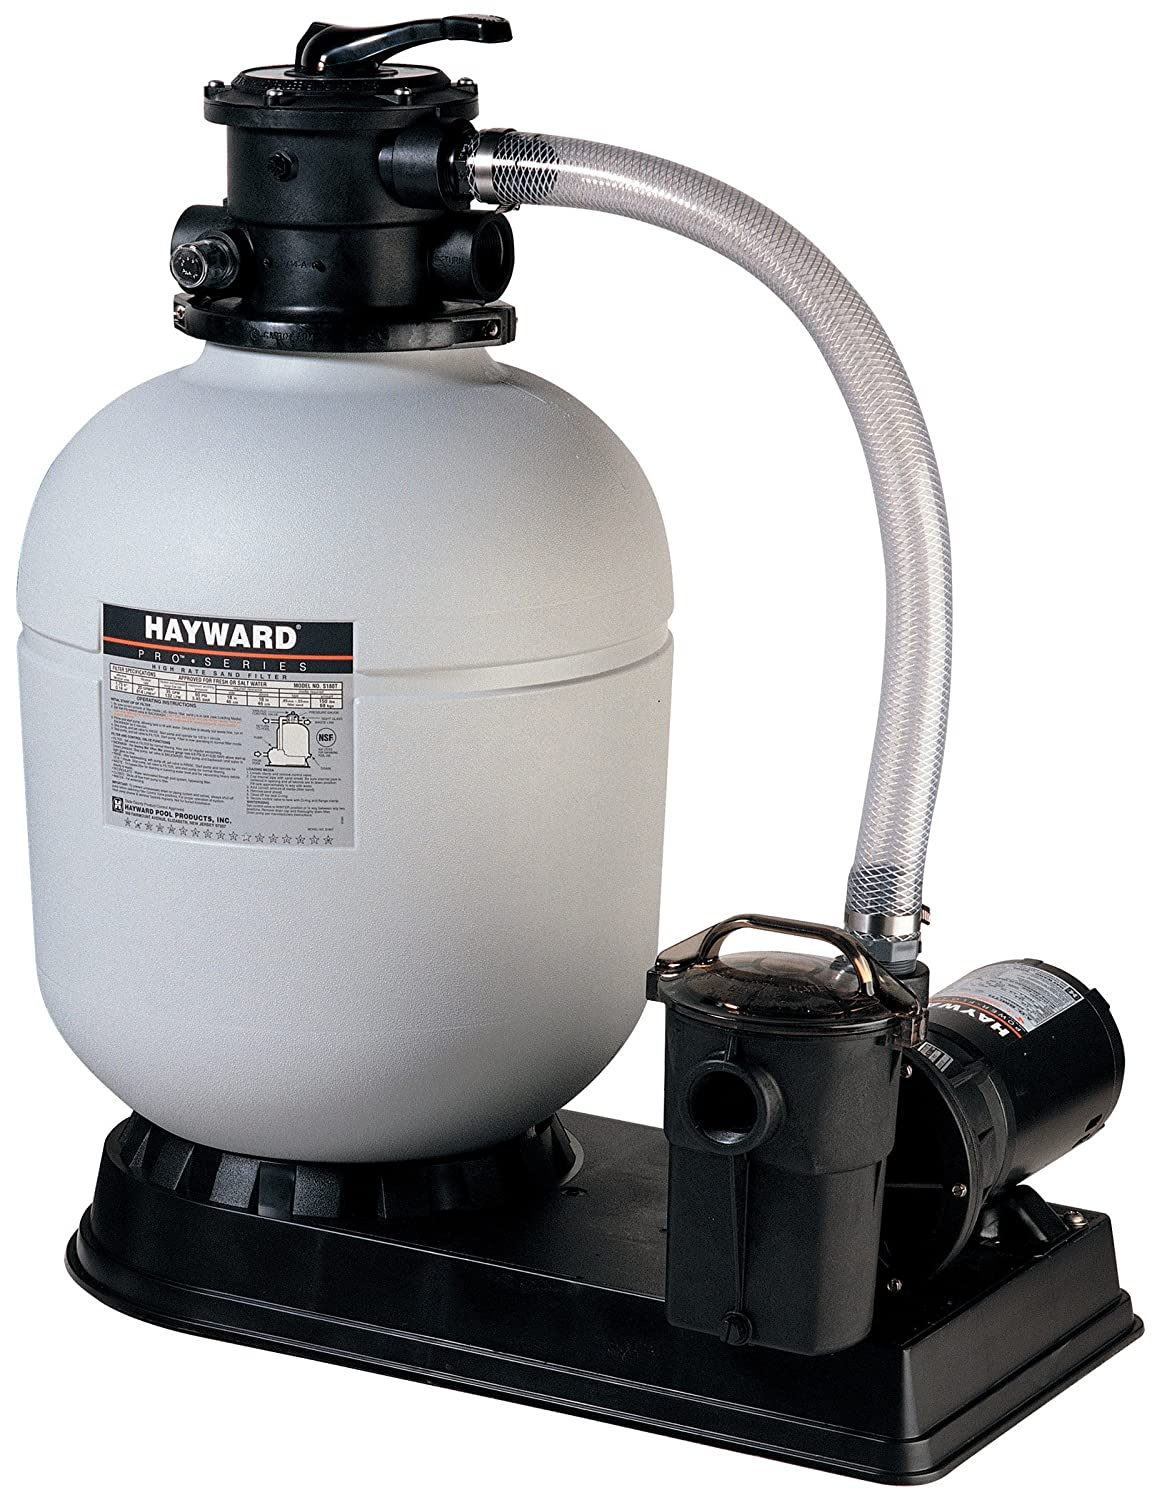 Amazon.com : Hayward S180T92S ProSeries 18-Inch 1 HP Sand Filter System :  Swimming Pool Sand Filters : Garden & Outdoor